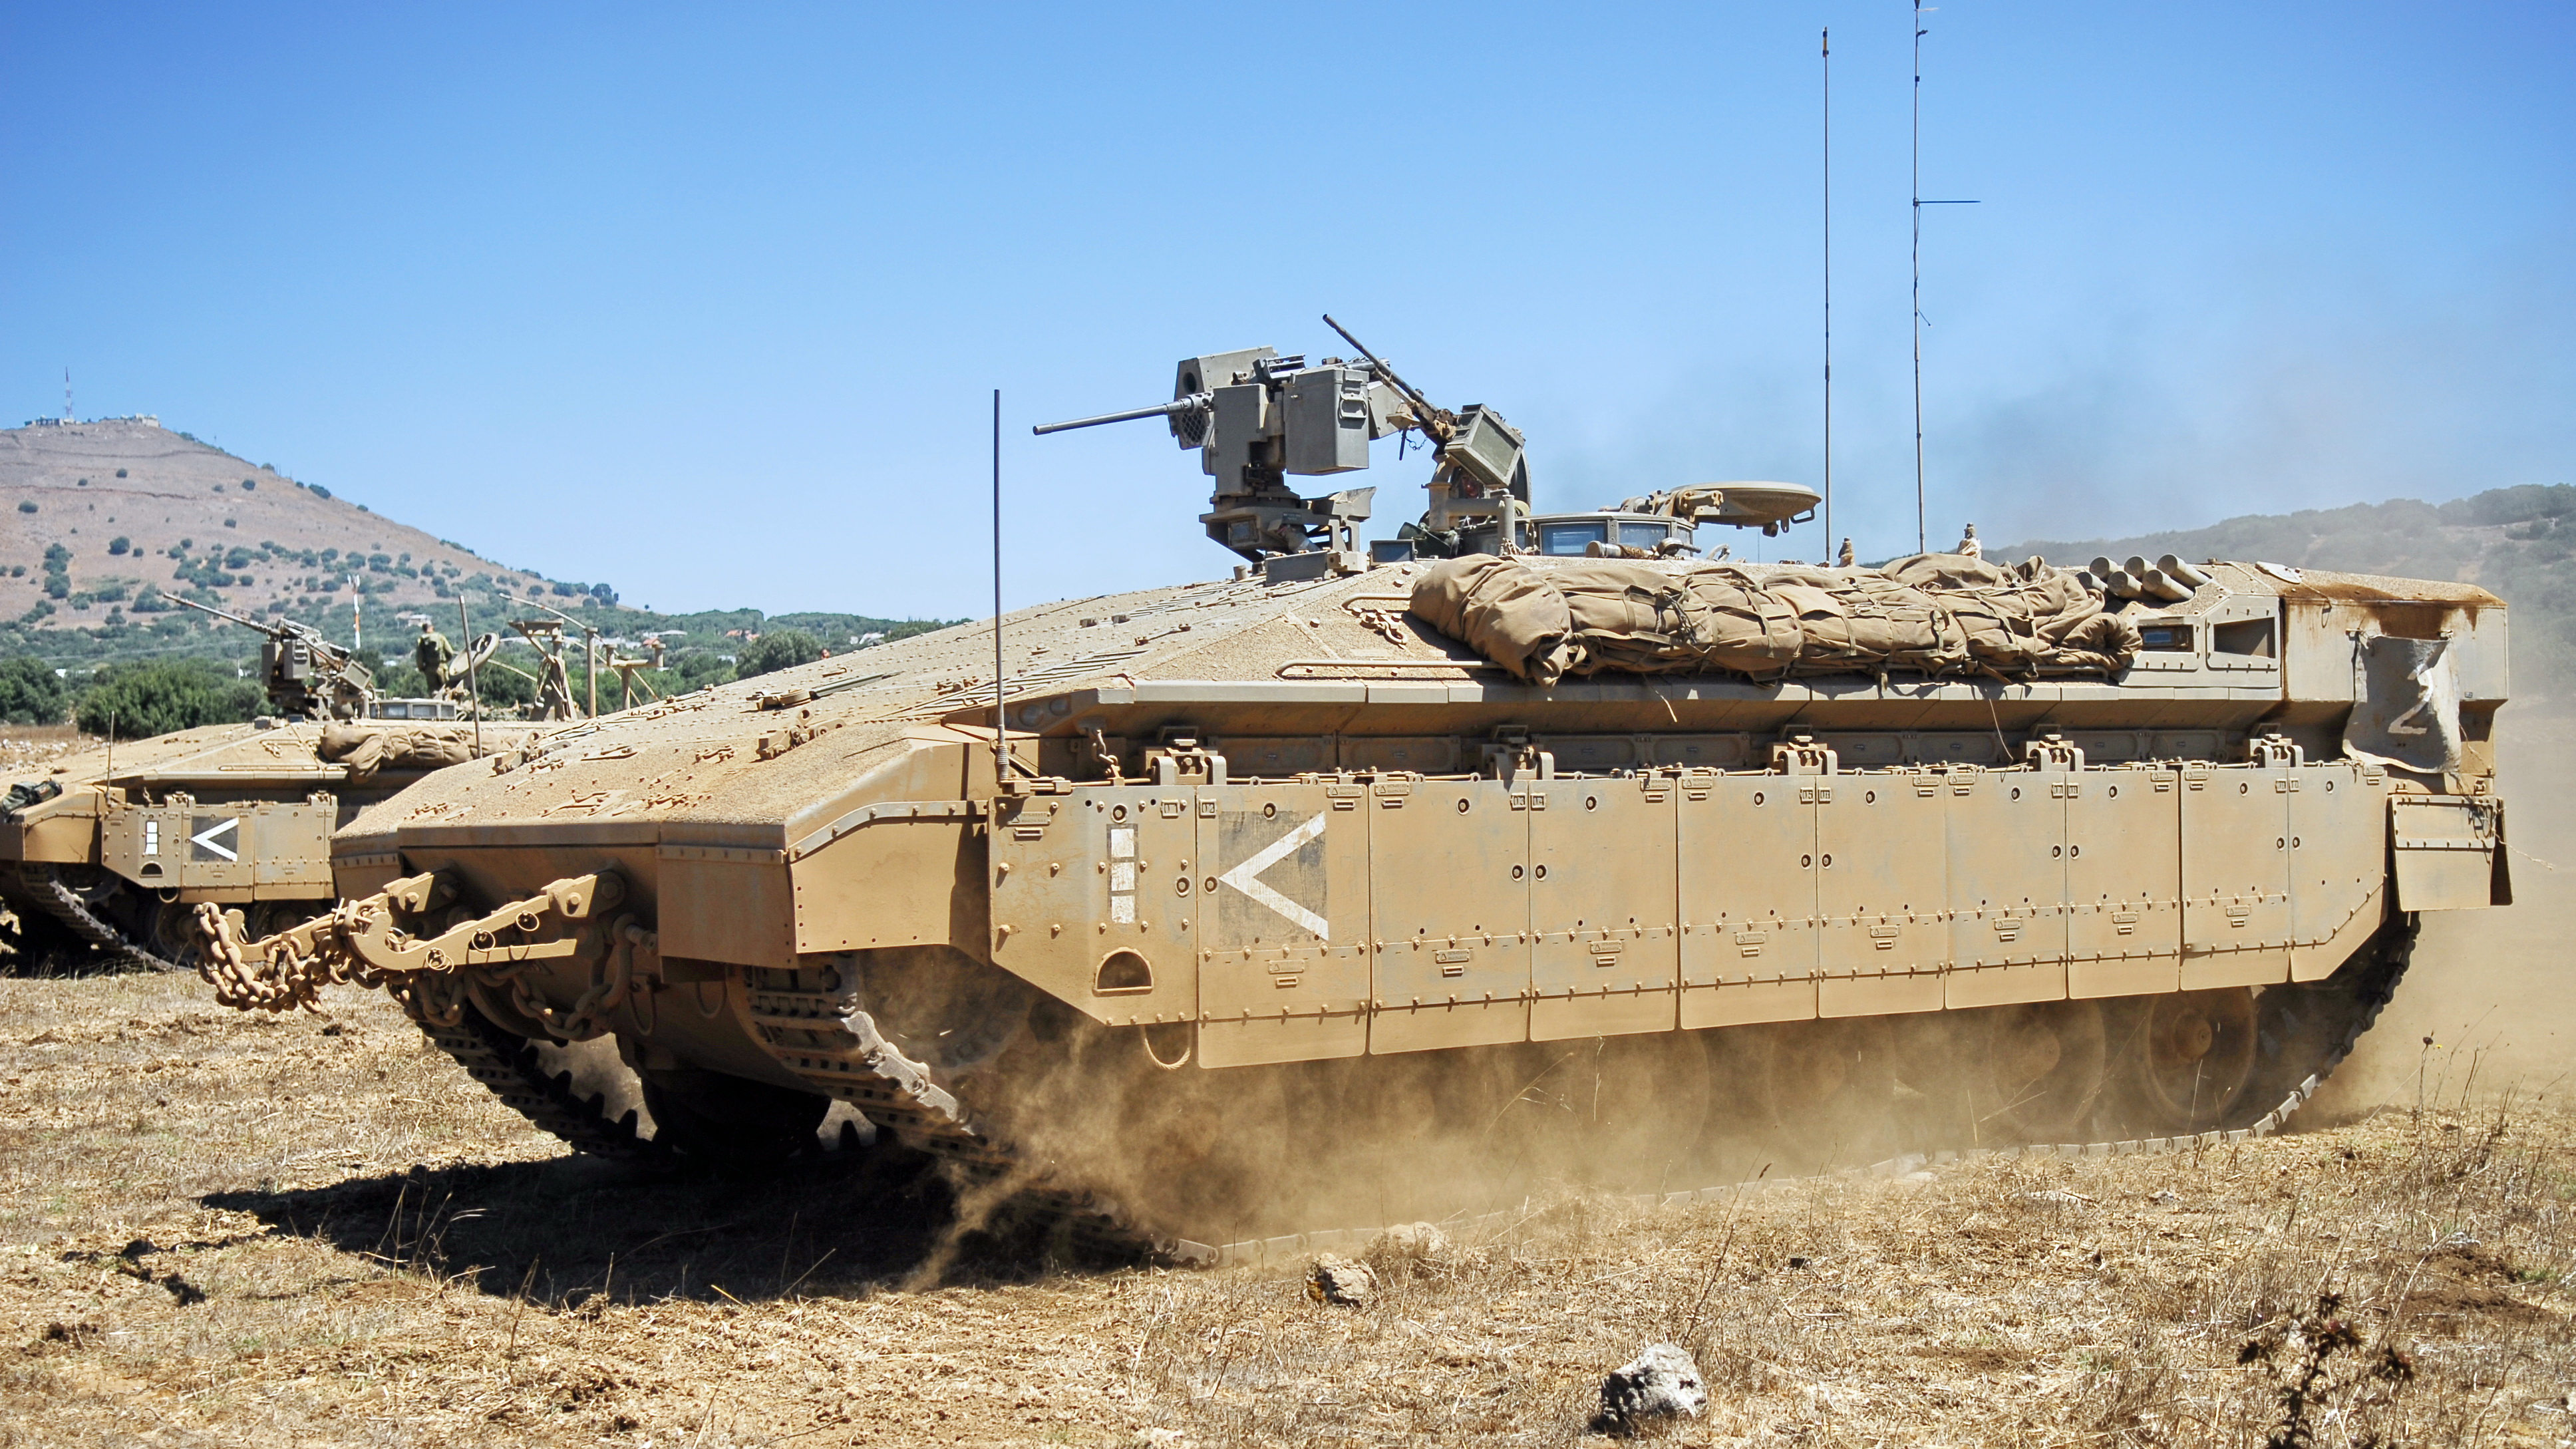 Despite its large size and heavy armor, the Israeli Namer APC is classified as an APC because it lacks the powerful armaments possessed by tanks and IFVs.